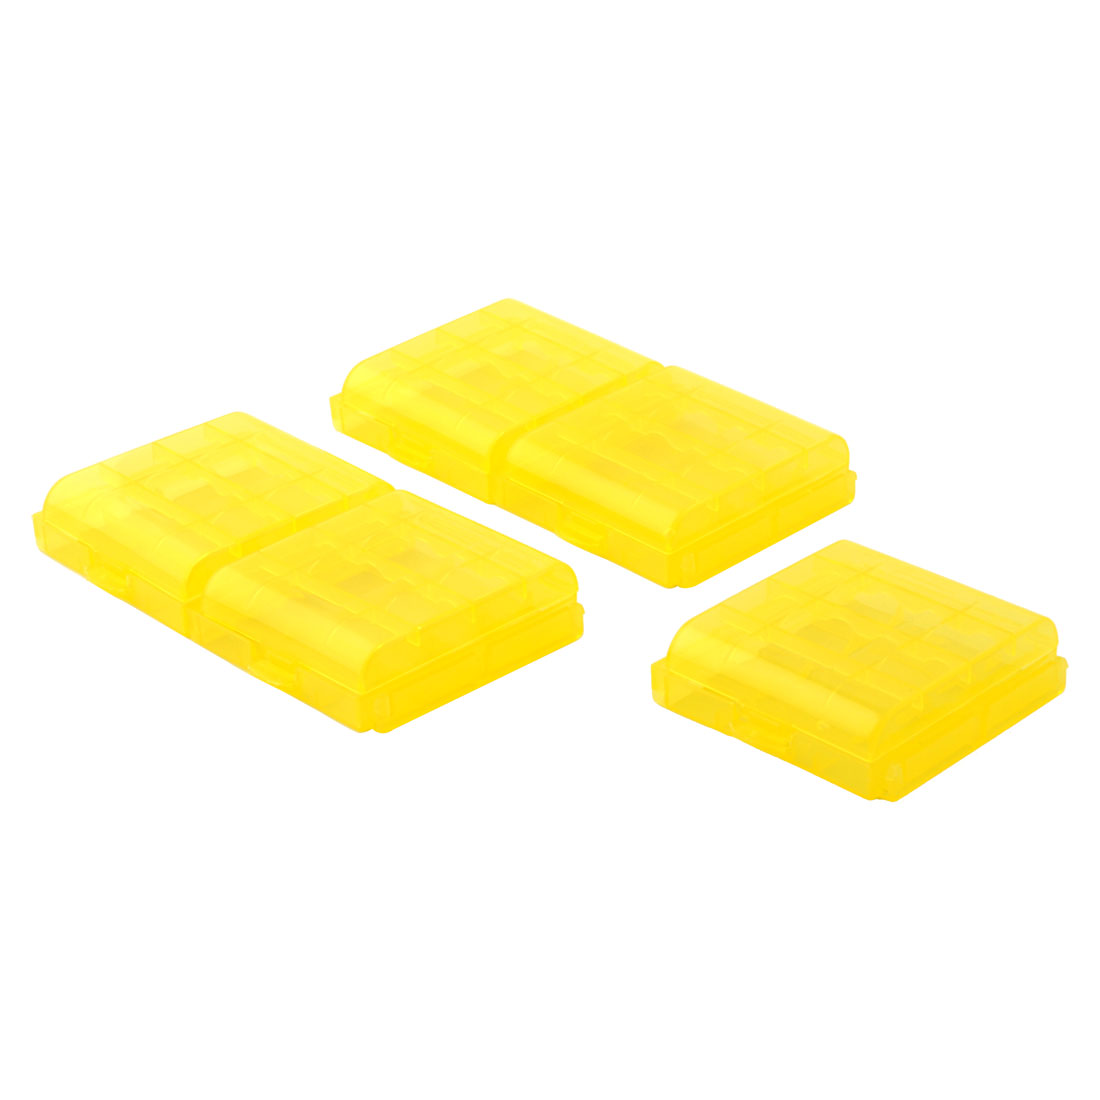 5Pcs Transparent Yellow Plastic Battery Compartment Storage Box for AA Batteries